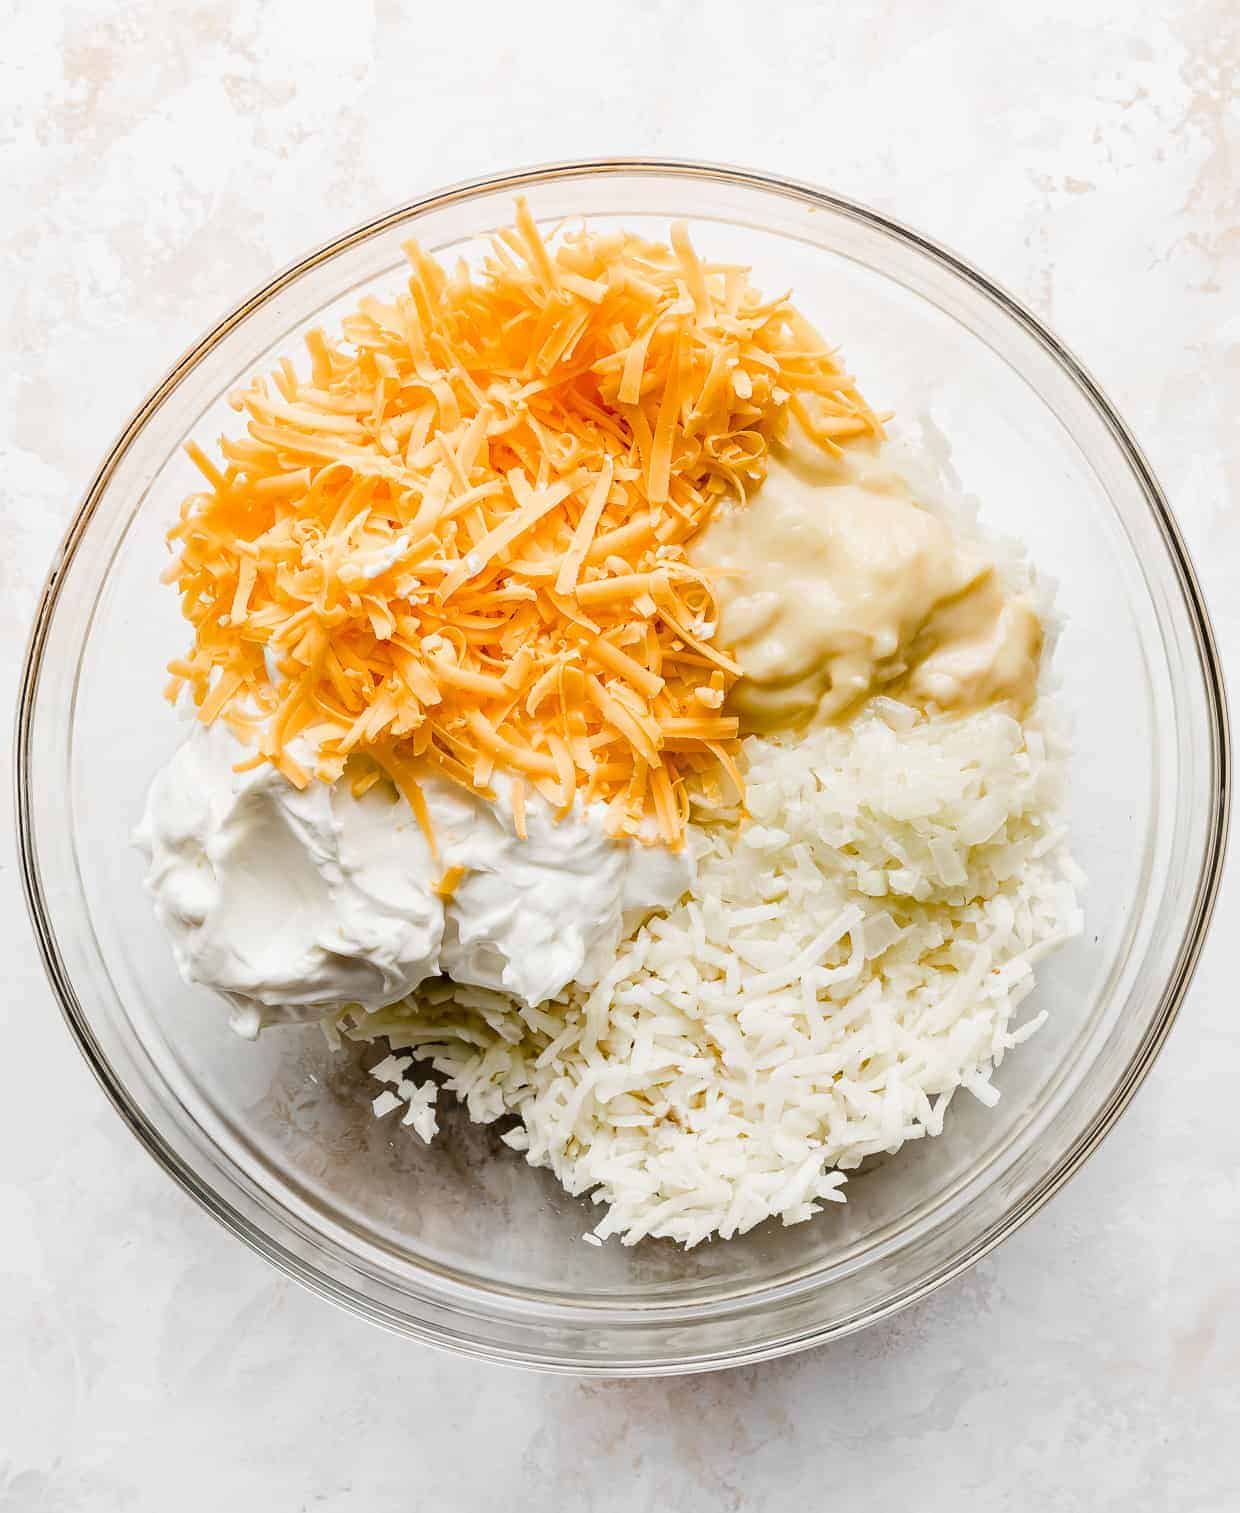 A large bowl full of shredded hashbrowns, cheddar cheese, sour cream, and cream of chicken.